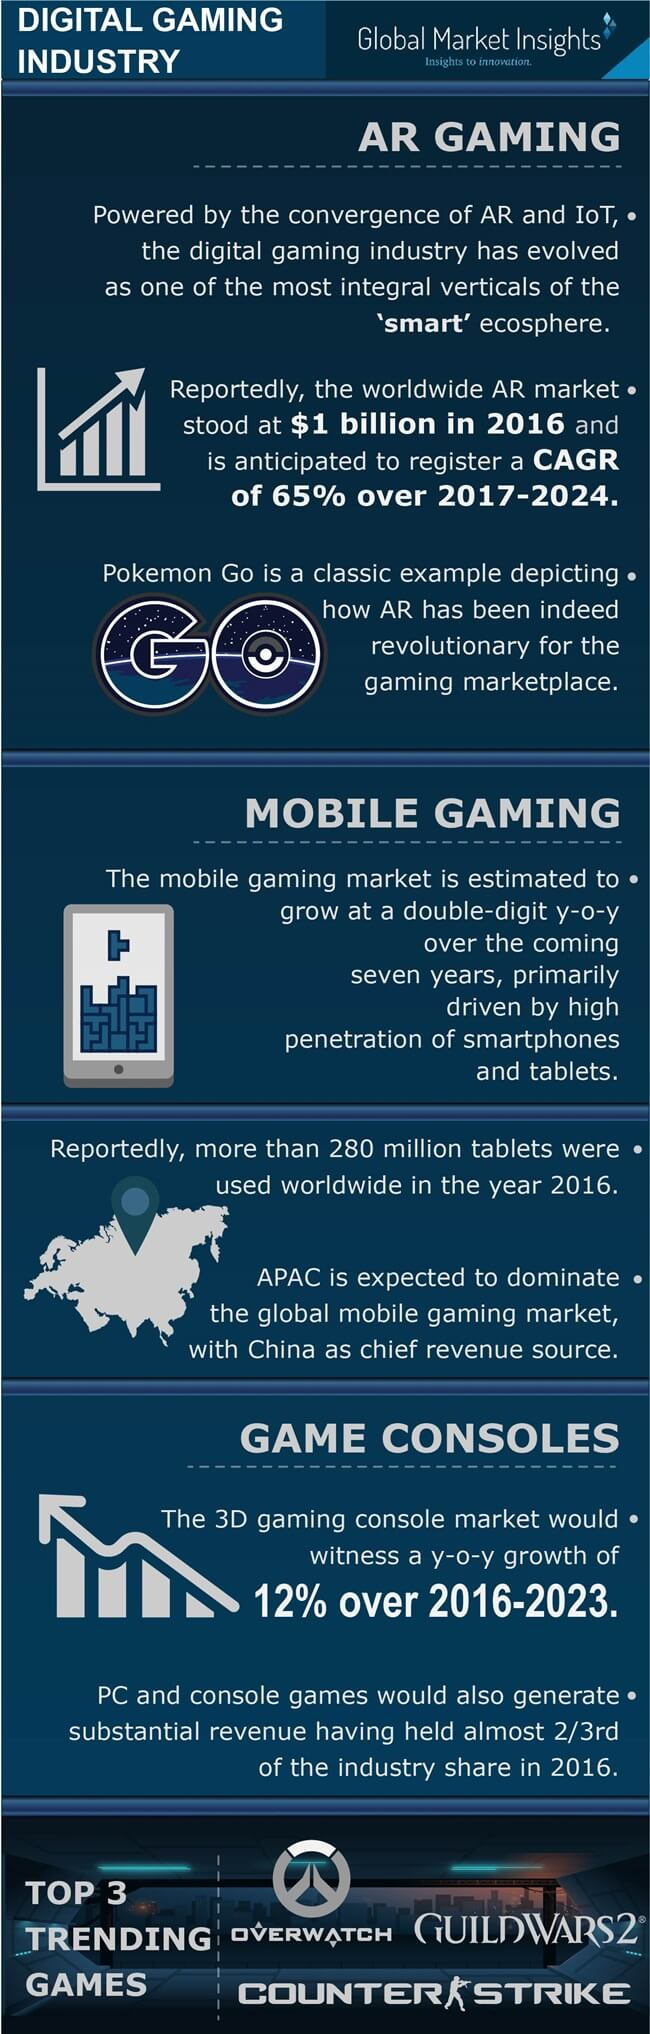 The gaming industry market